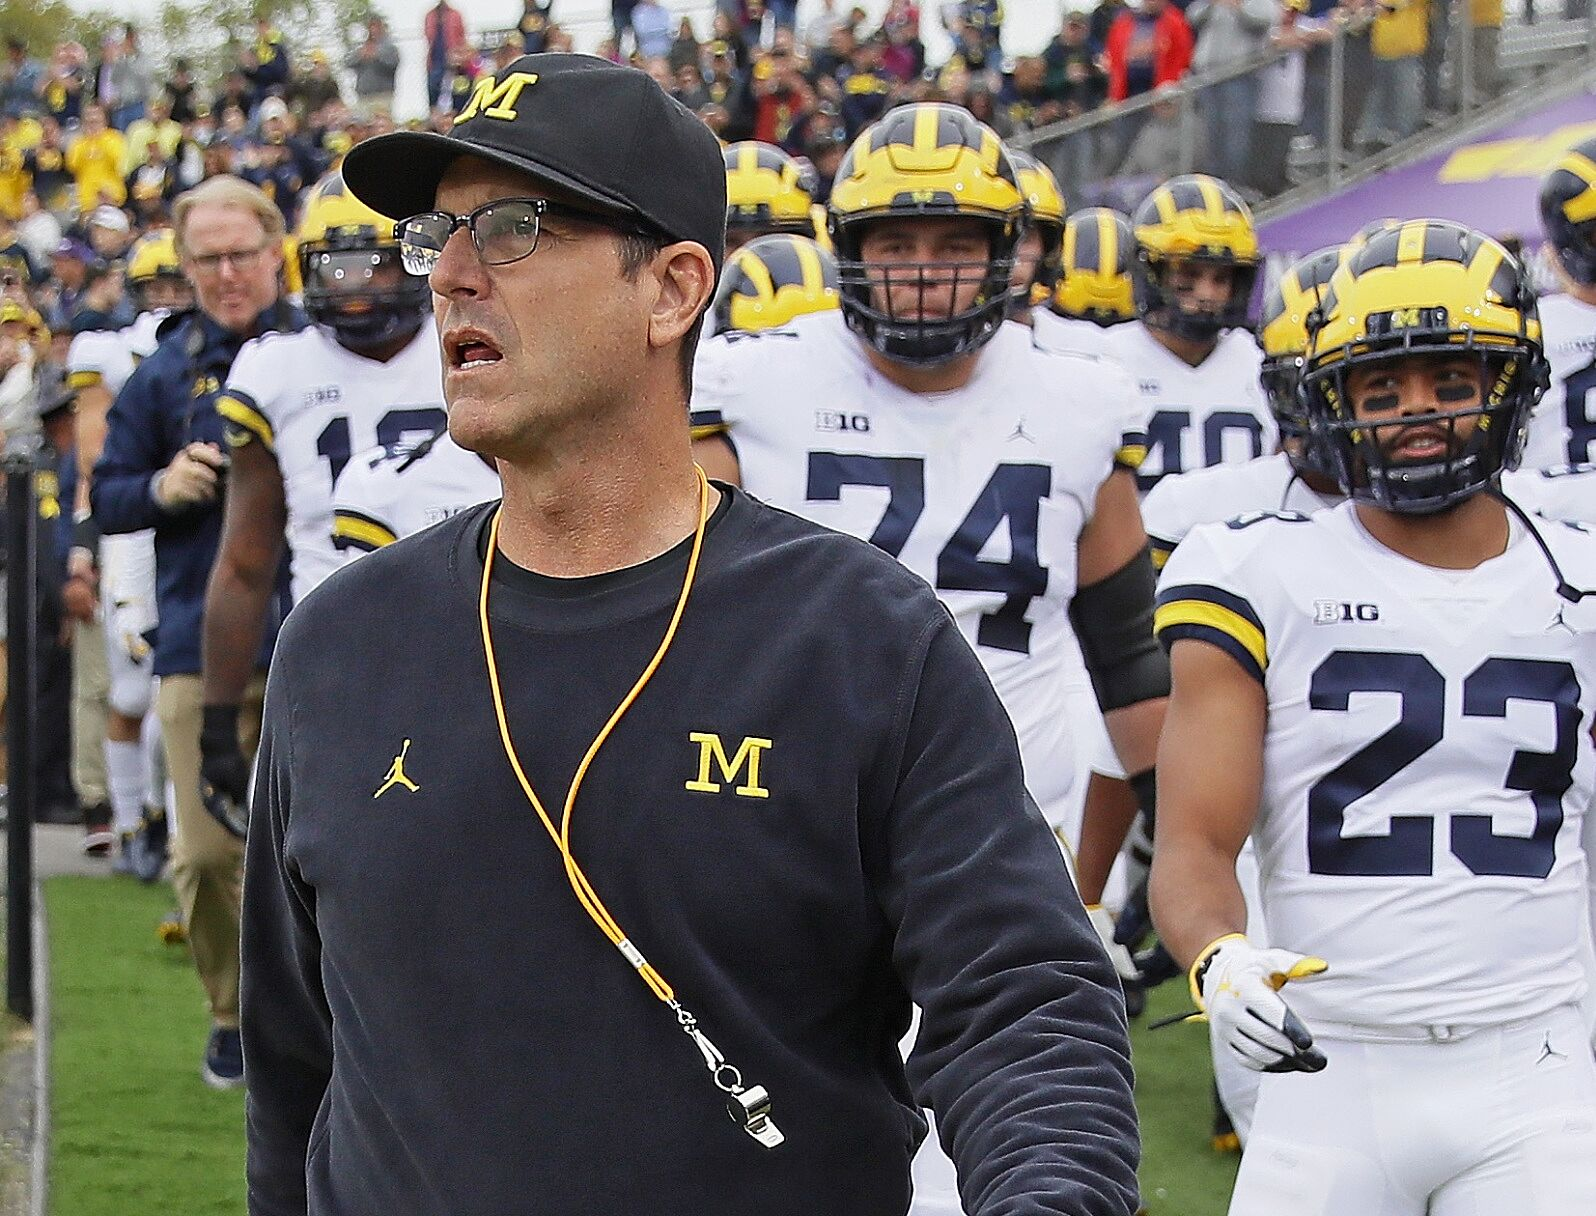 Michigan Football: Answering 5 key questions heading into 2019